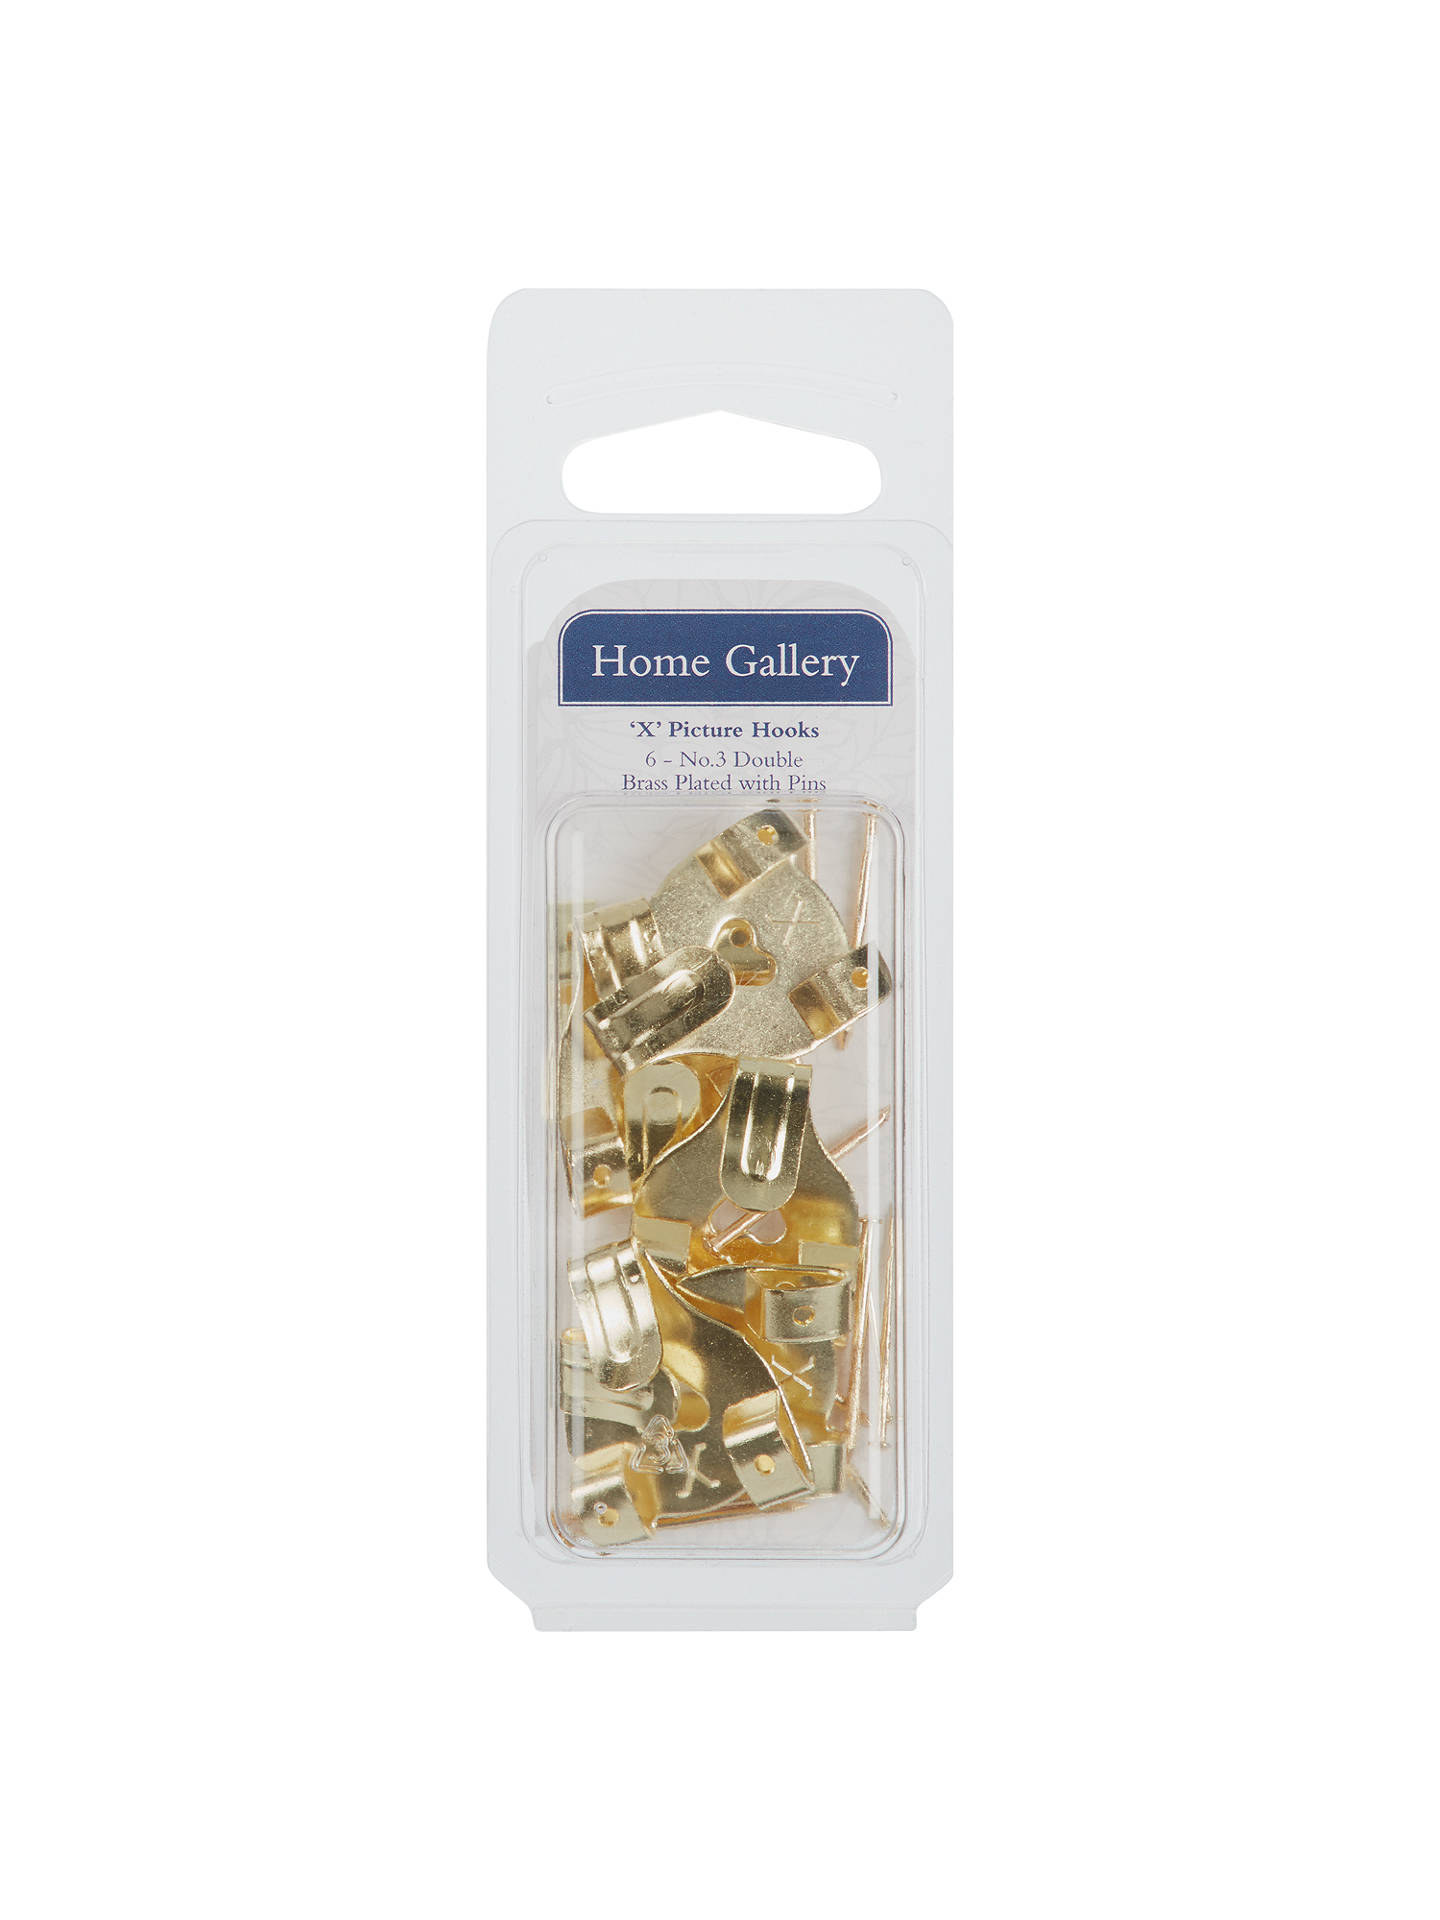 BuyHome Gallery Picture Hooks Brass Headed Pins, Pack of 6 Online at johnlewis.com